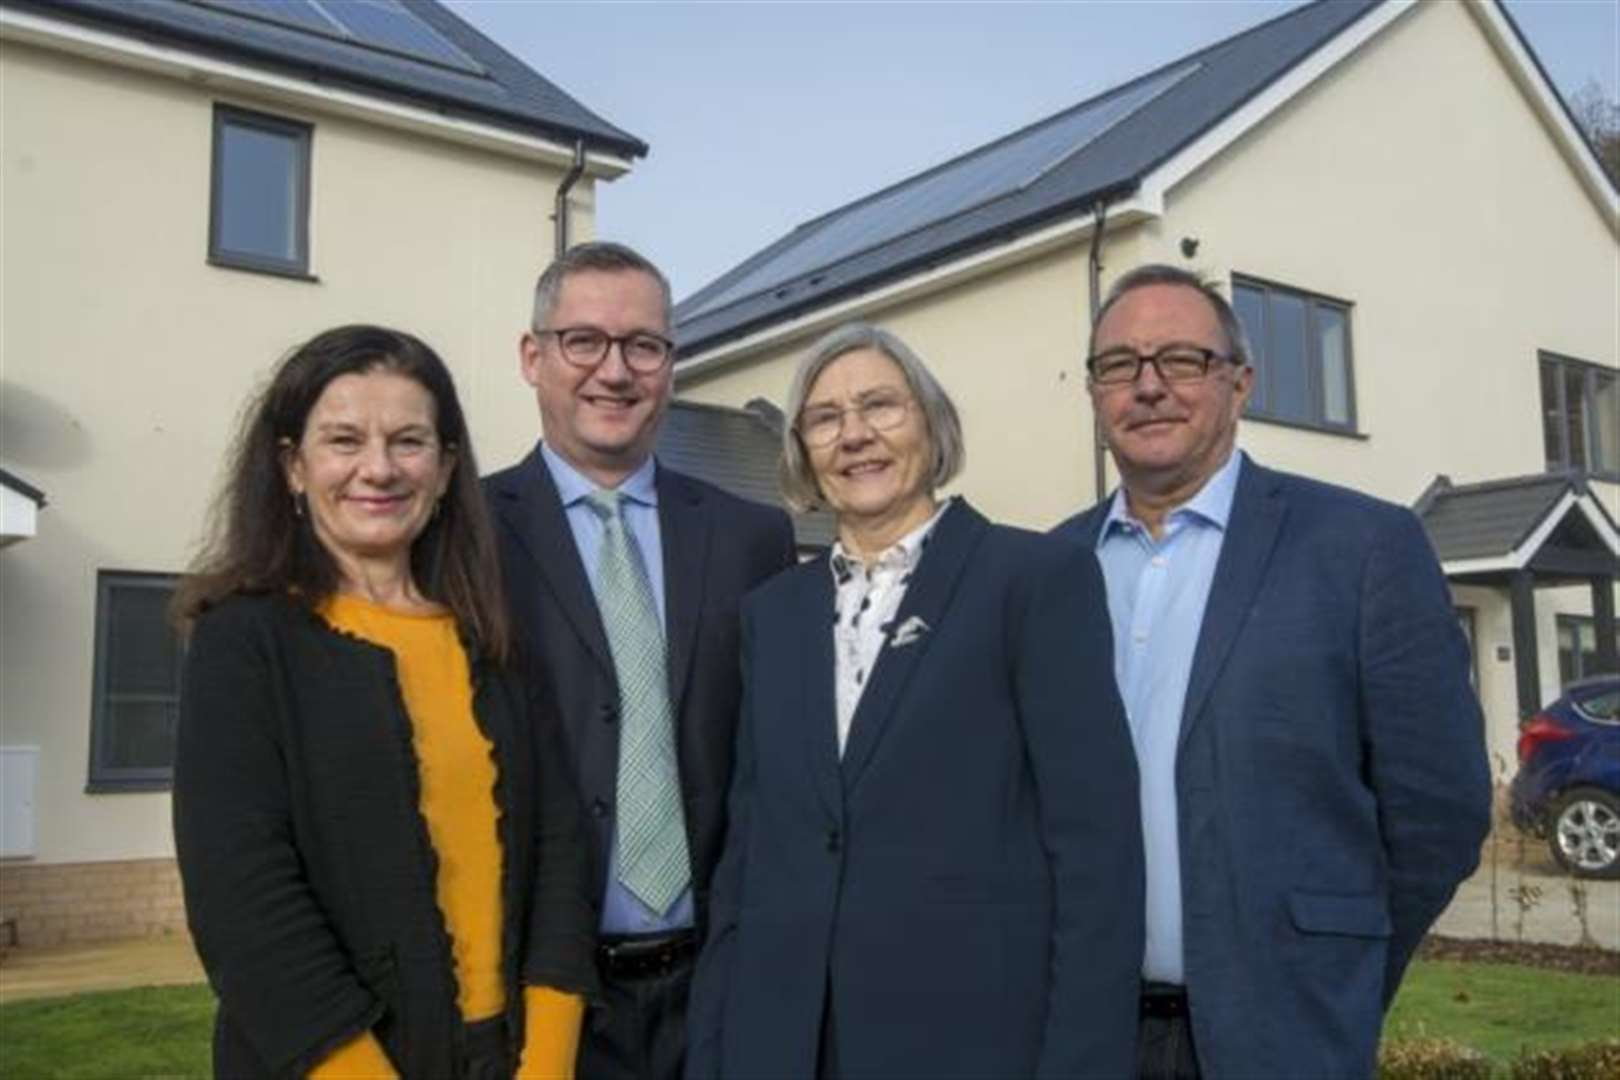 Residents move into new council homes at Cambridgeshire village